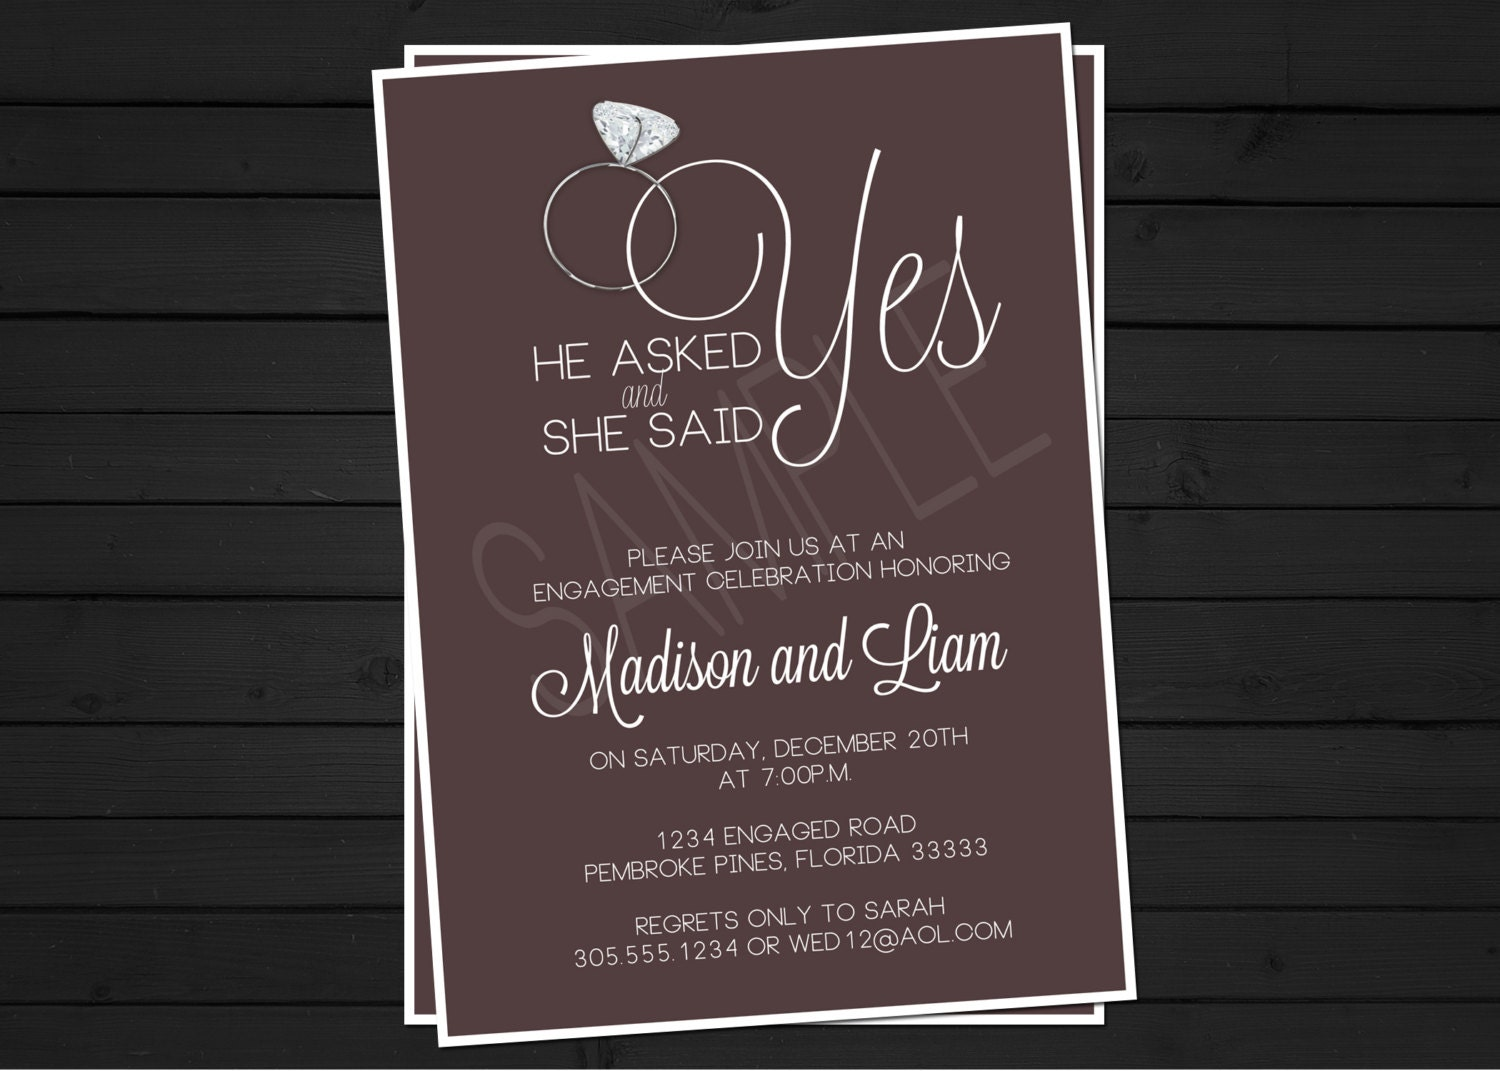 Engagement party invitation digital file by shestutucutebtq for Invitation for engagement party